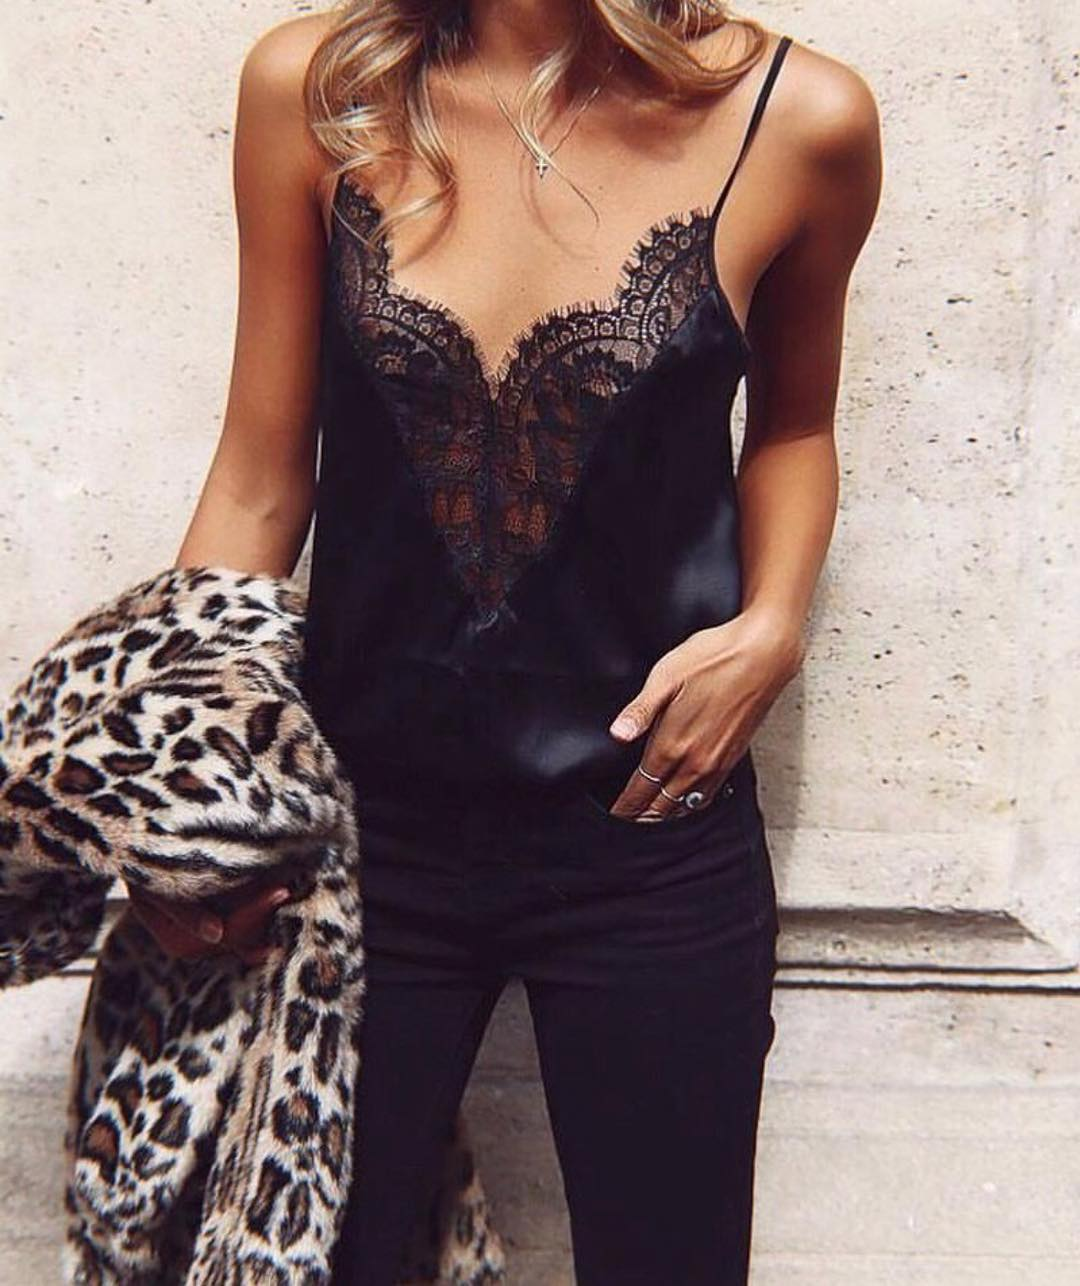 Fall Must Haves: Leopard Coat, Silk Black Slip Tank Top With Lace Detailing And Black Skinnies 2021